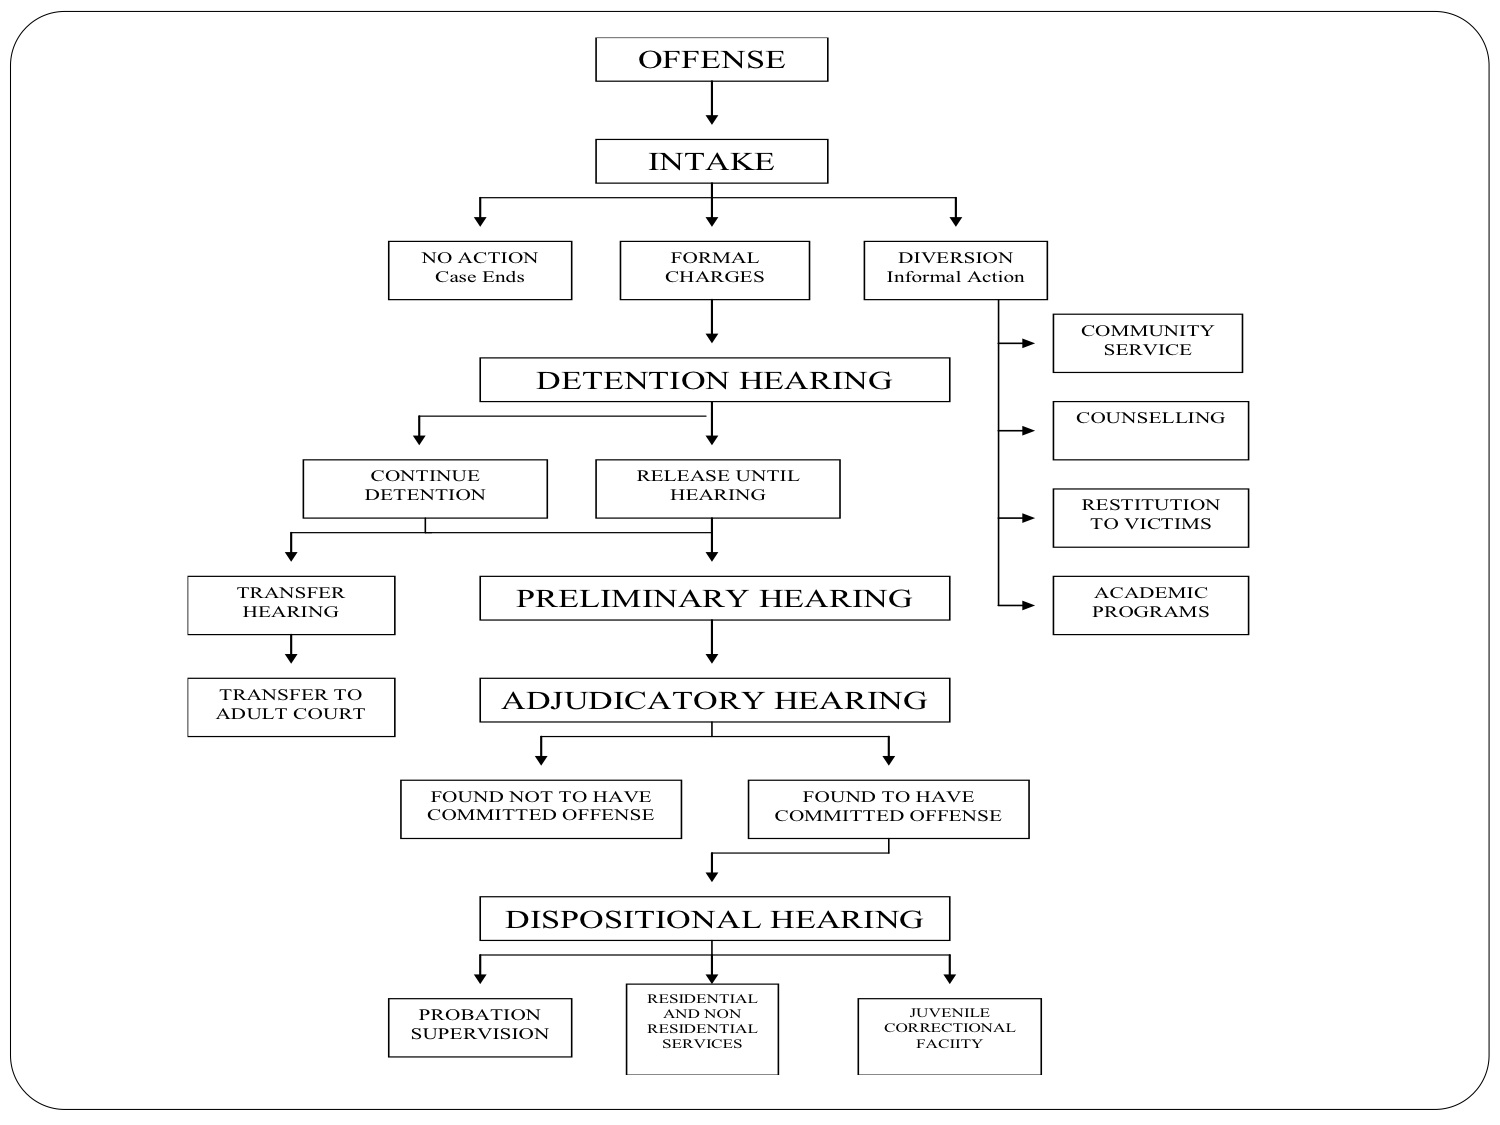 california court system diagram fluorescent dimming ballast wiring juvenile justice flowchart in word